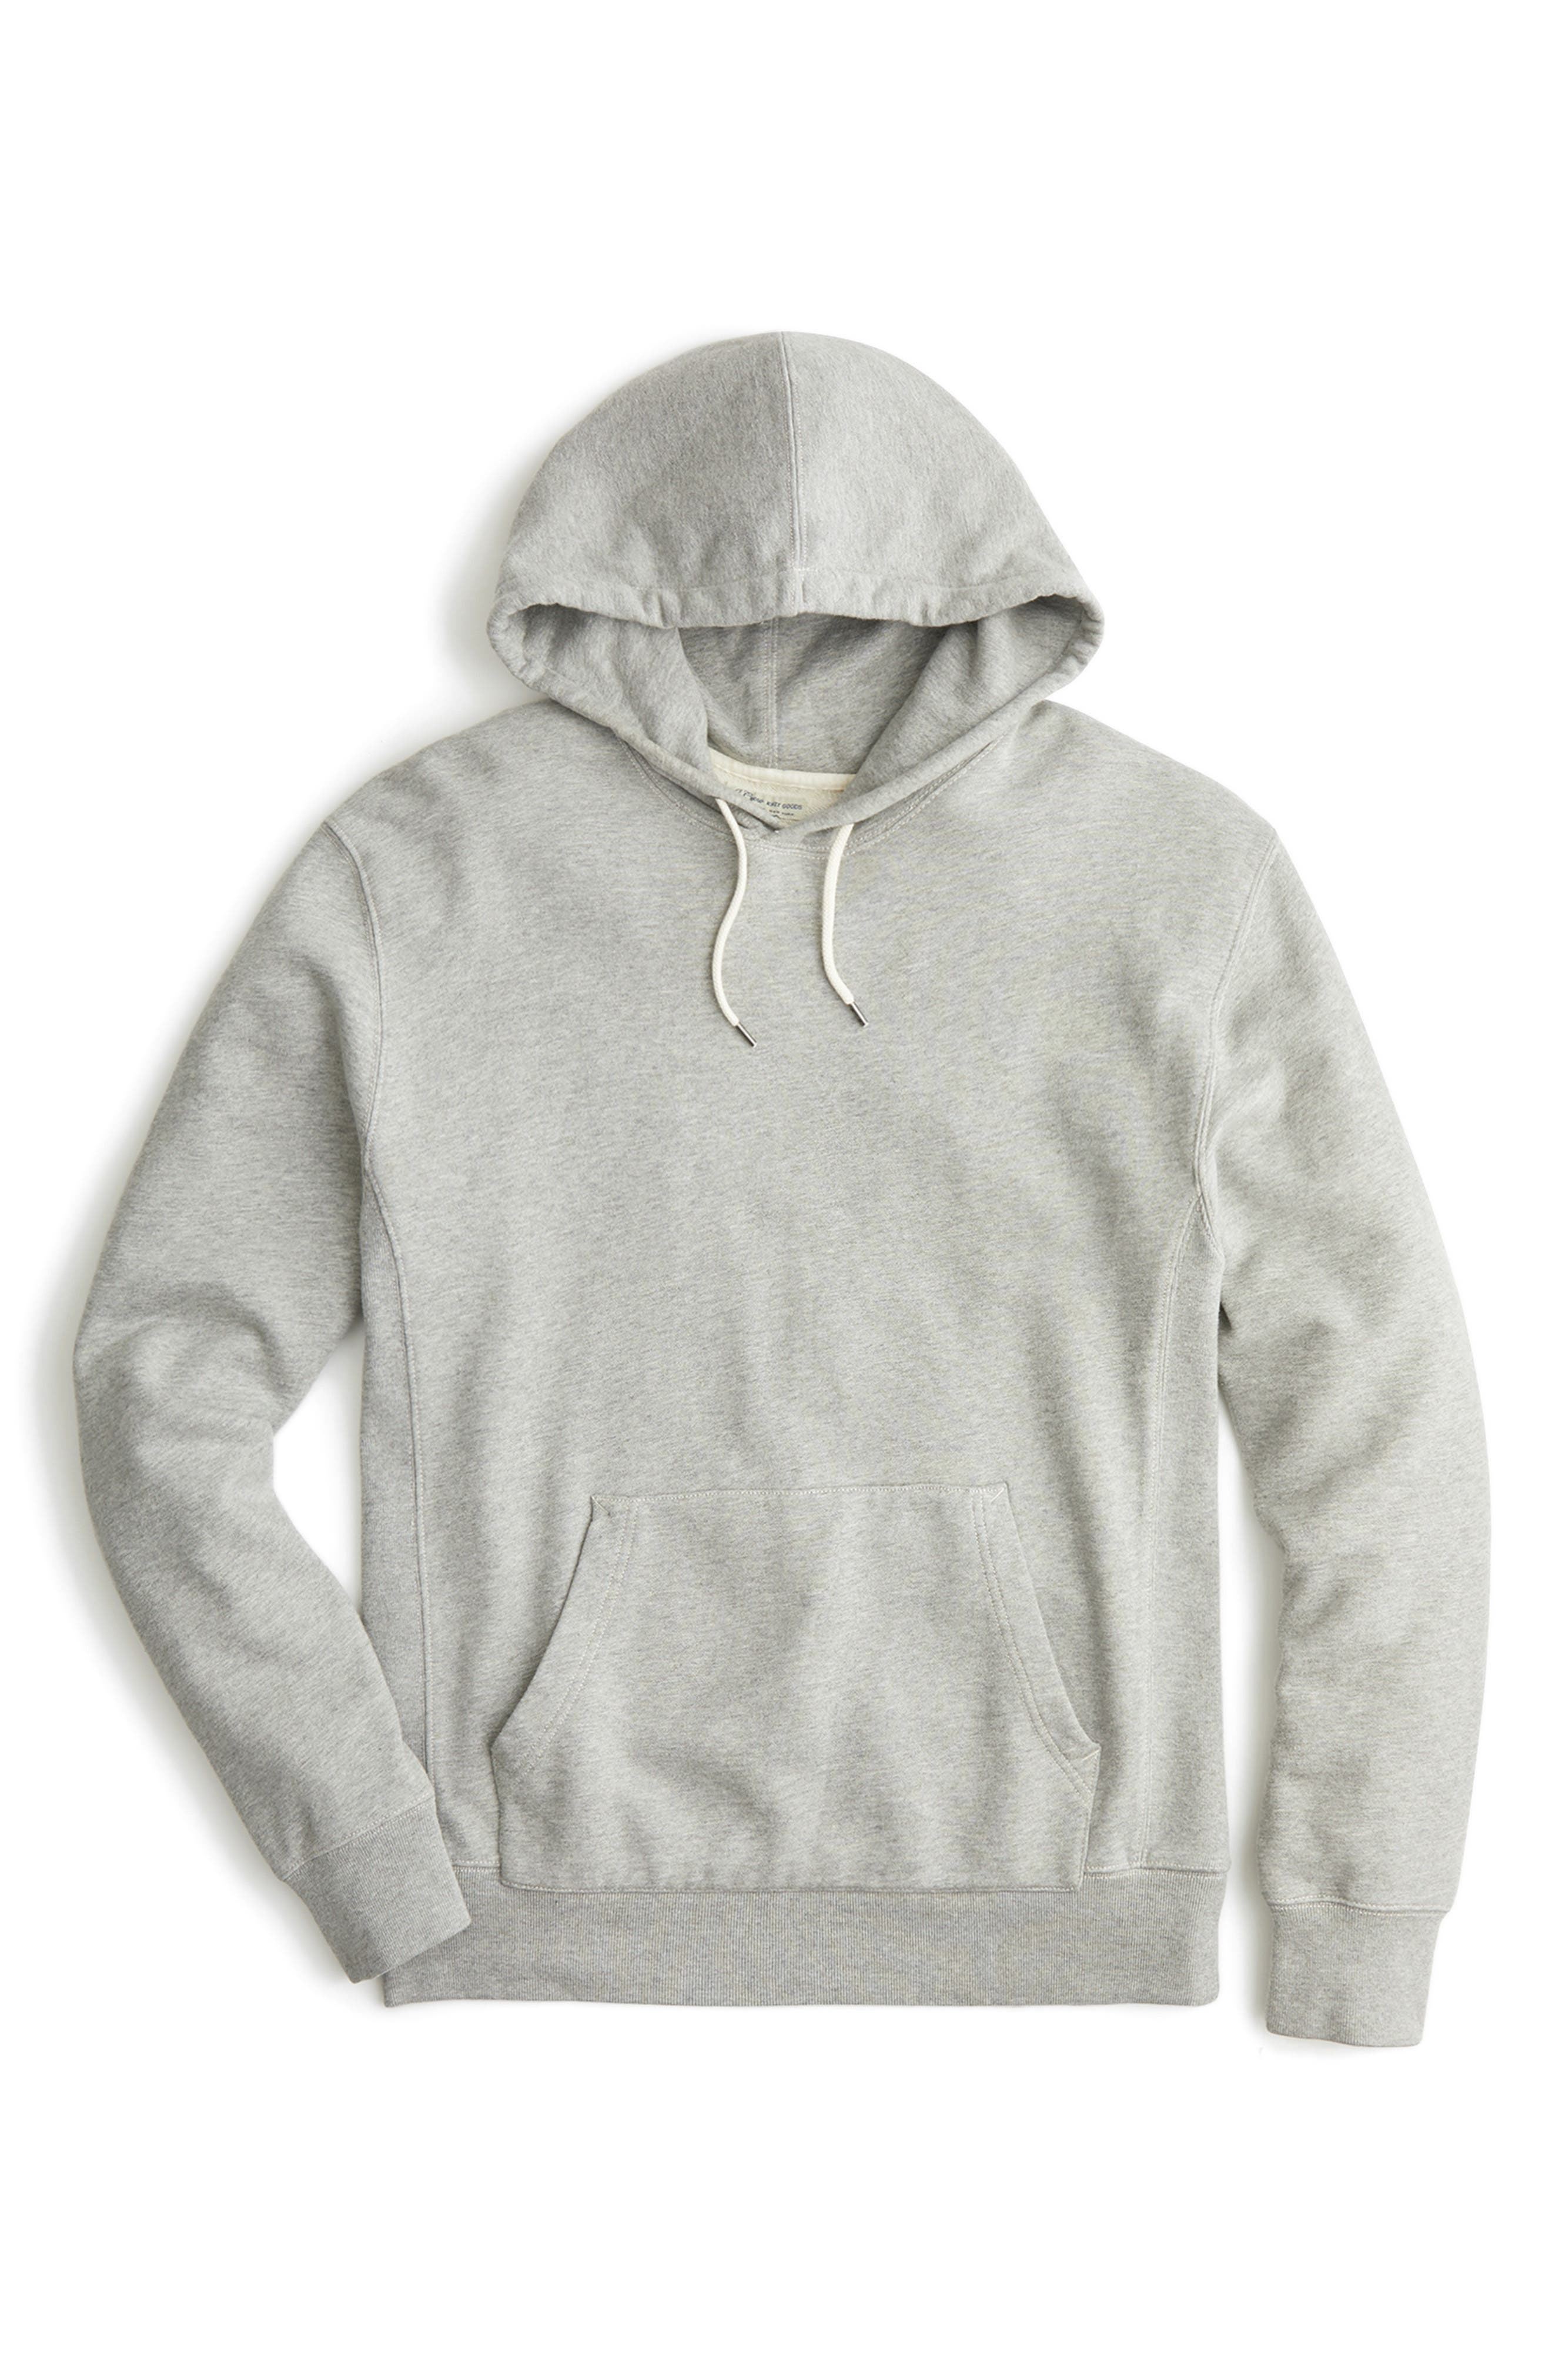 French Terry Pullover Hoodie,                             Alternate thumbnail 4, color,                             021